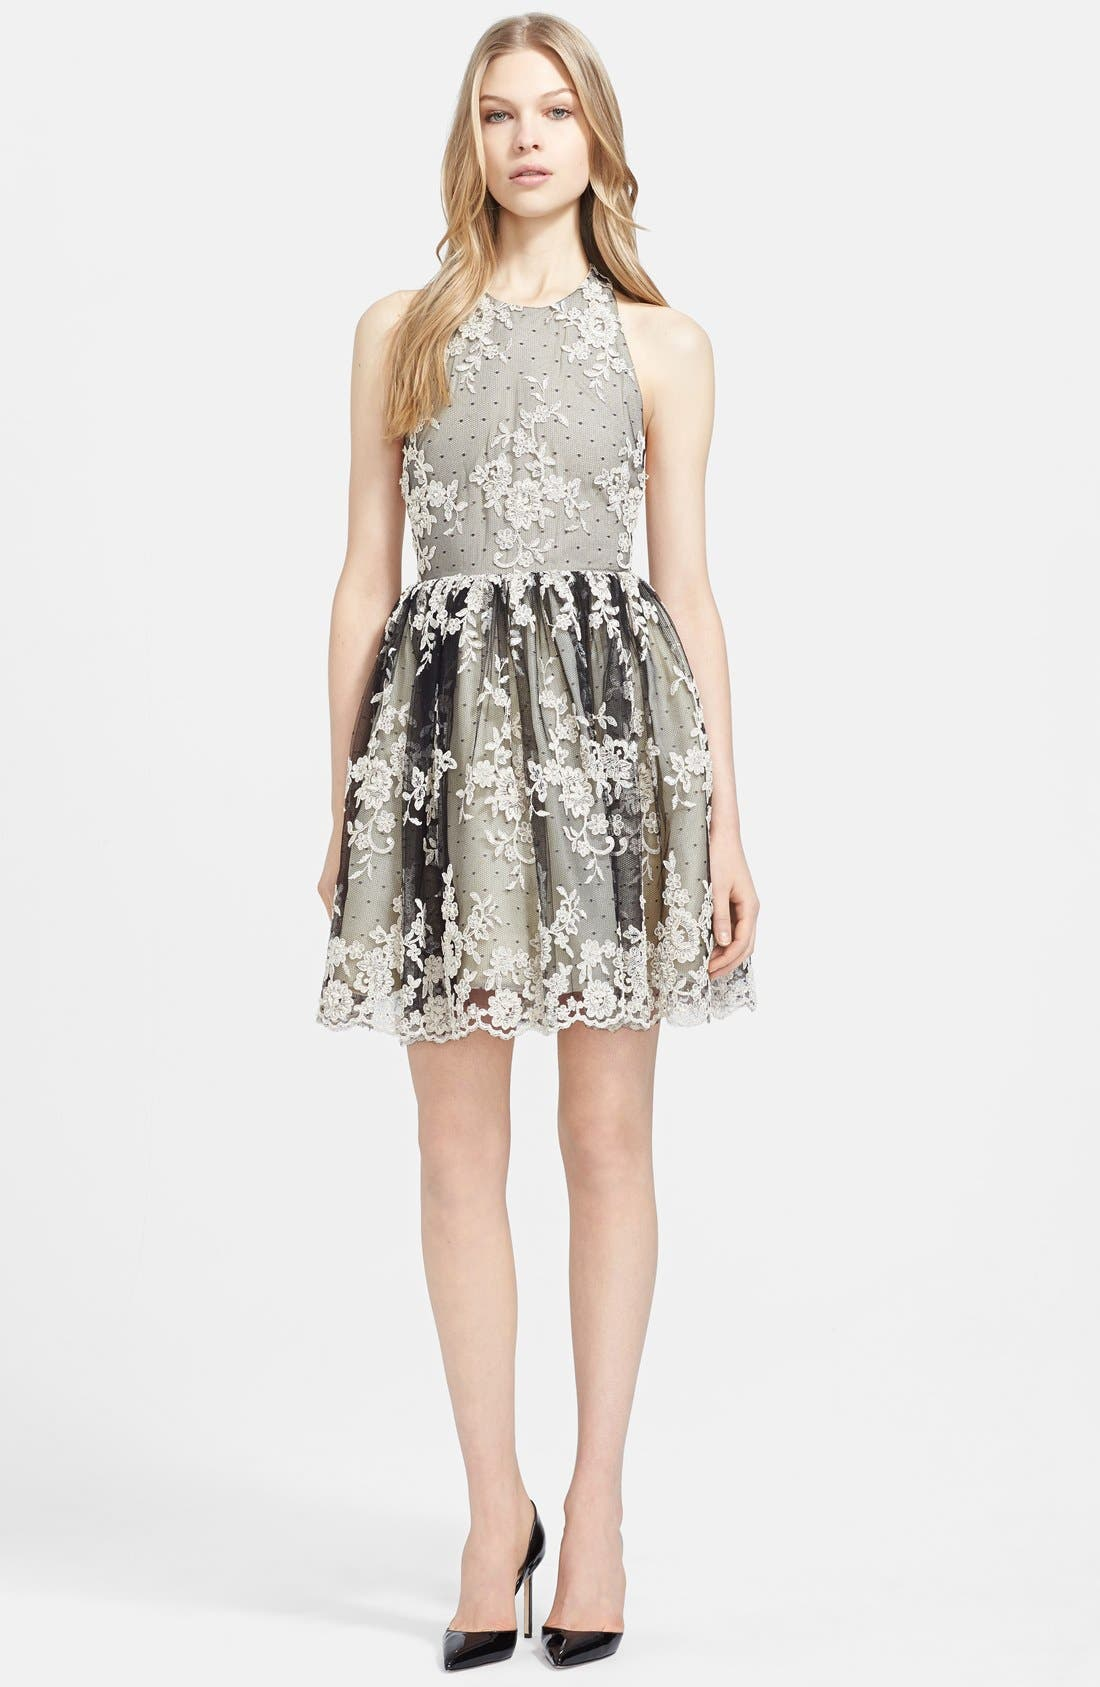 Alternate Image 1 Selected - Alice + Olivia 'Betrice' T-back Lace Fit & Flare Dress